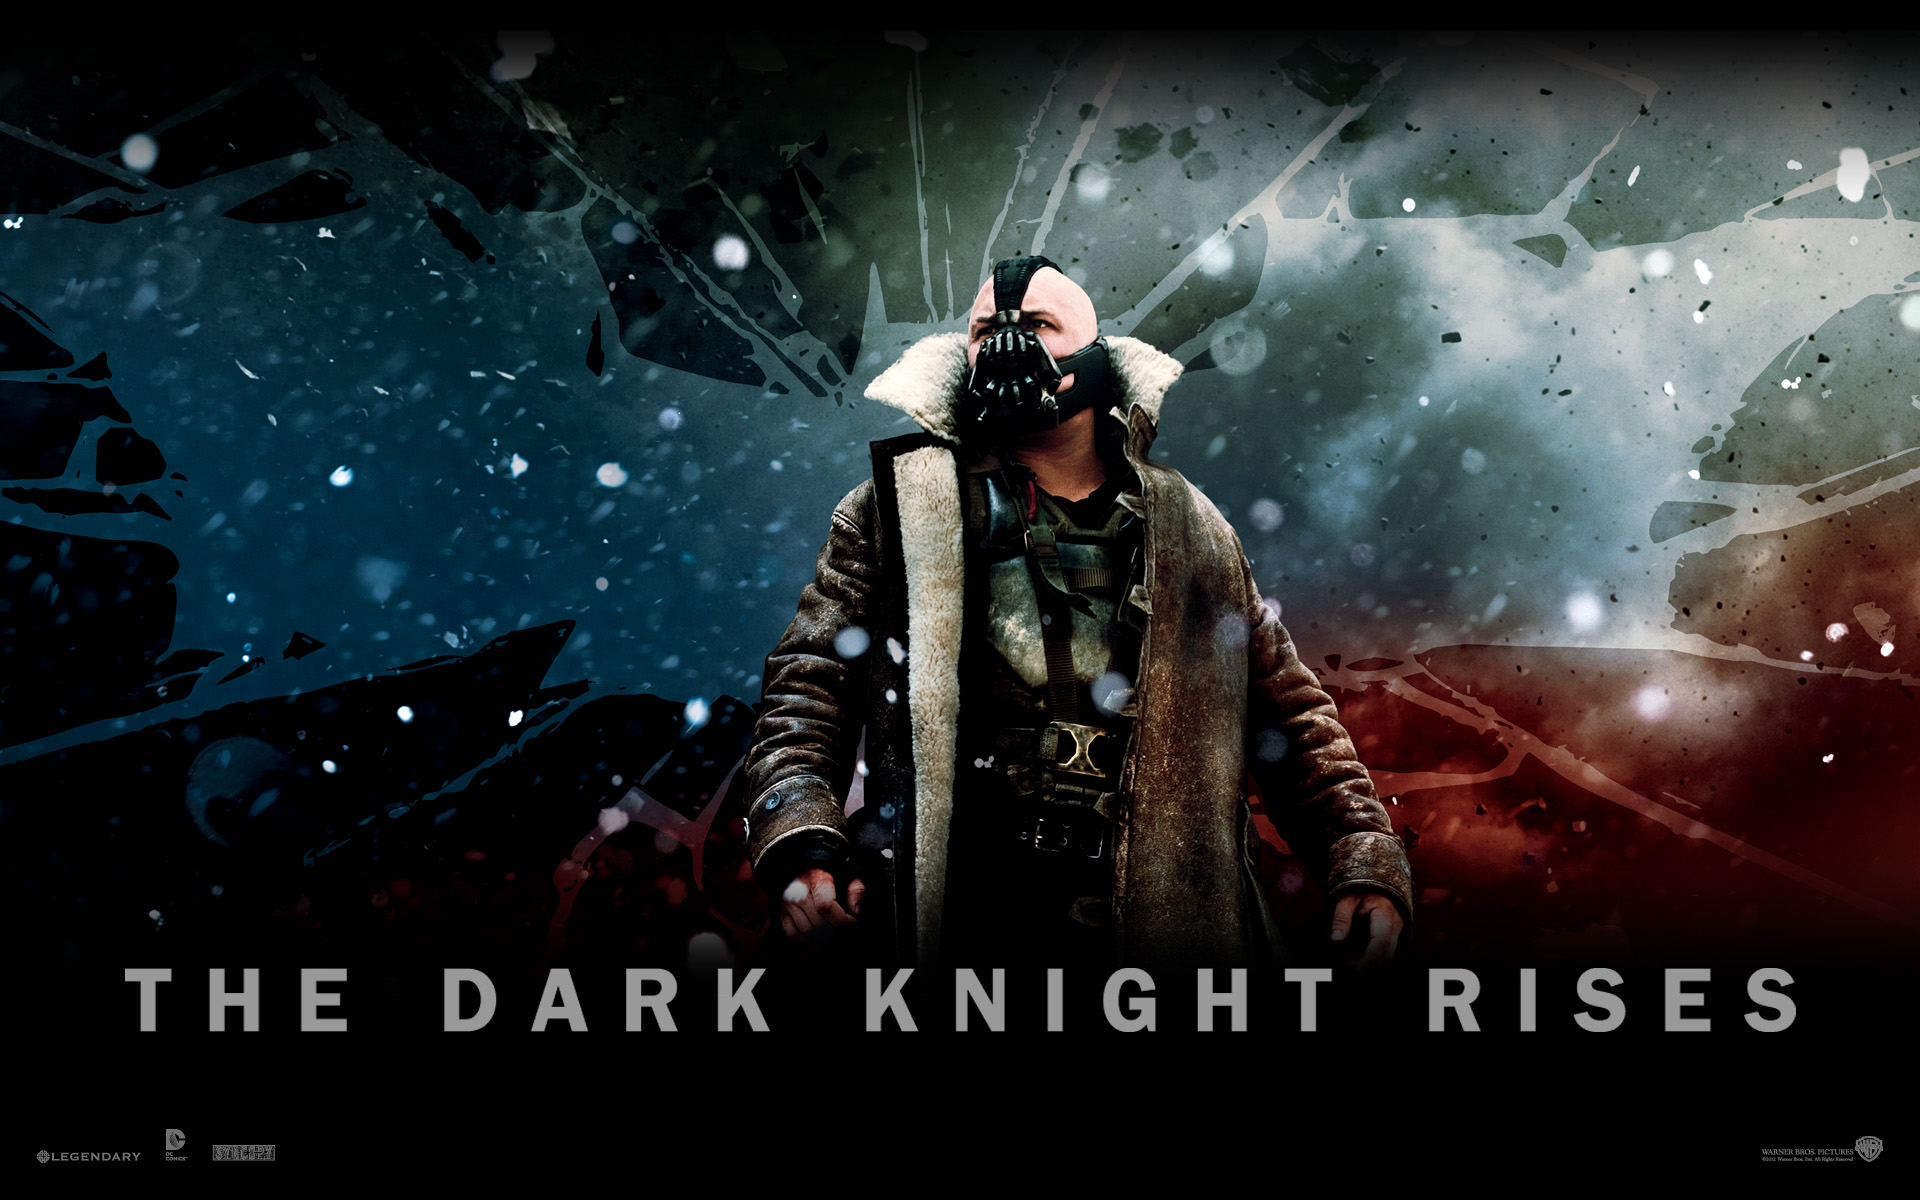 The Dark Knight Rises Official 2 Wallpapers | Wallpapers HD